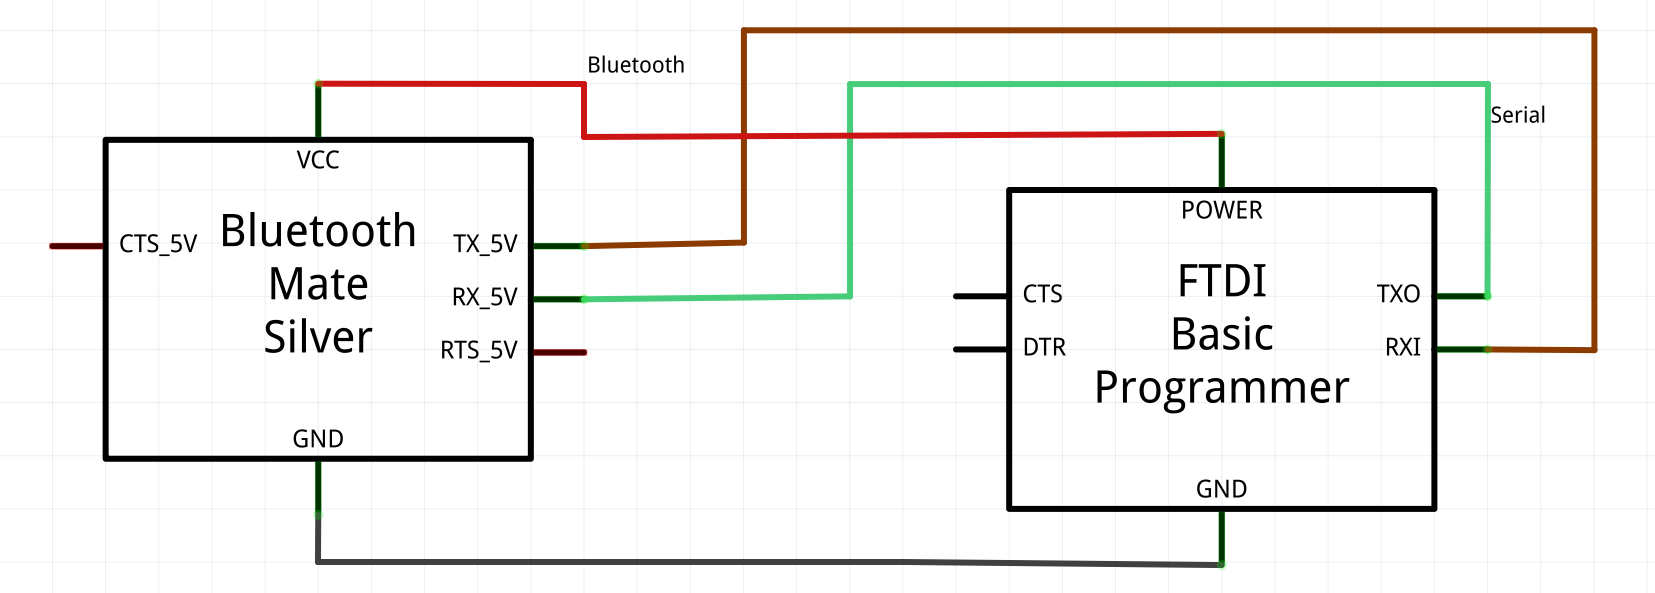 Bluetooth to Serial Schematic